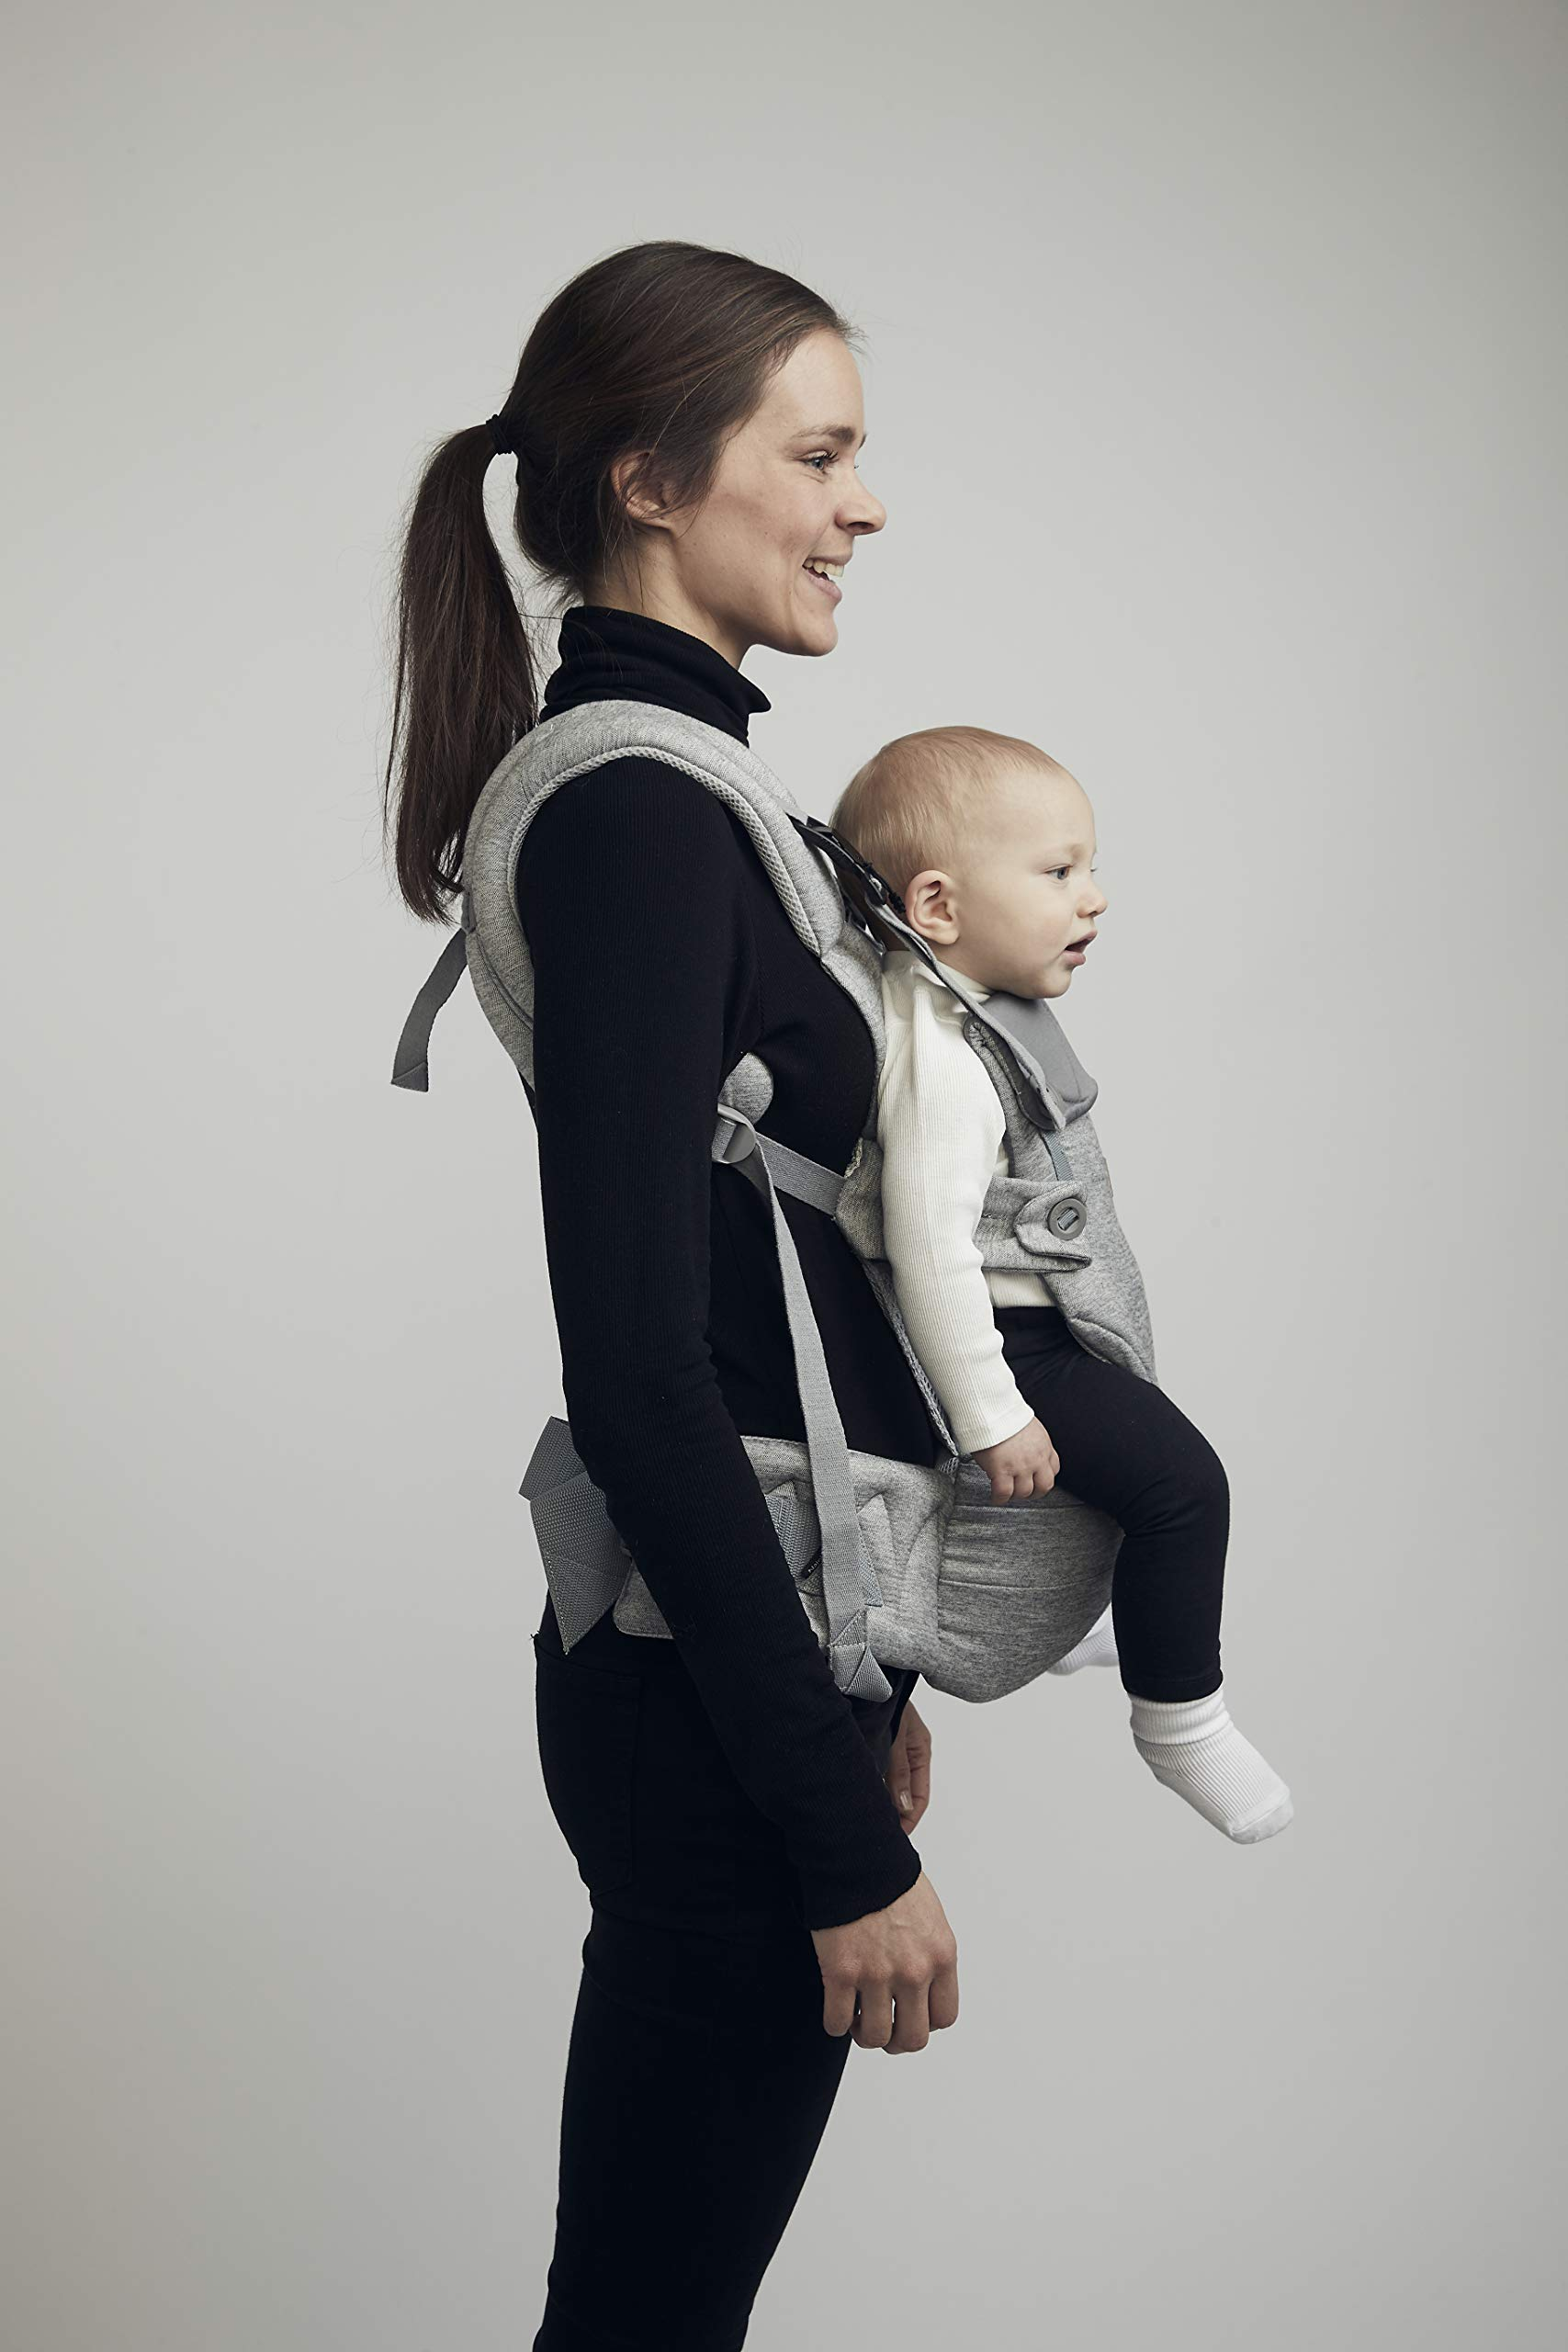 Najell Omni Active Mesh Baby Carrier with Hip Seat, Brilliant Black Béaba New-born ergonomic position and hips seat from 6 months. Market leading weight distribution with hip seat, recommended by the international hip dysplasia institute as a hip-healthy baby carrier Weight: 3, 5 to 15 kg and age: new-born to 3 years. 21